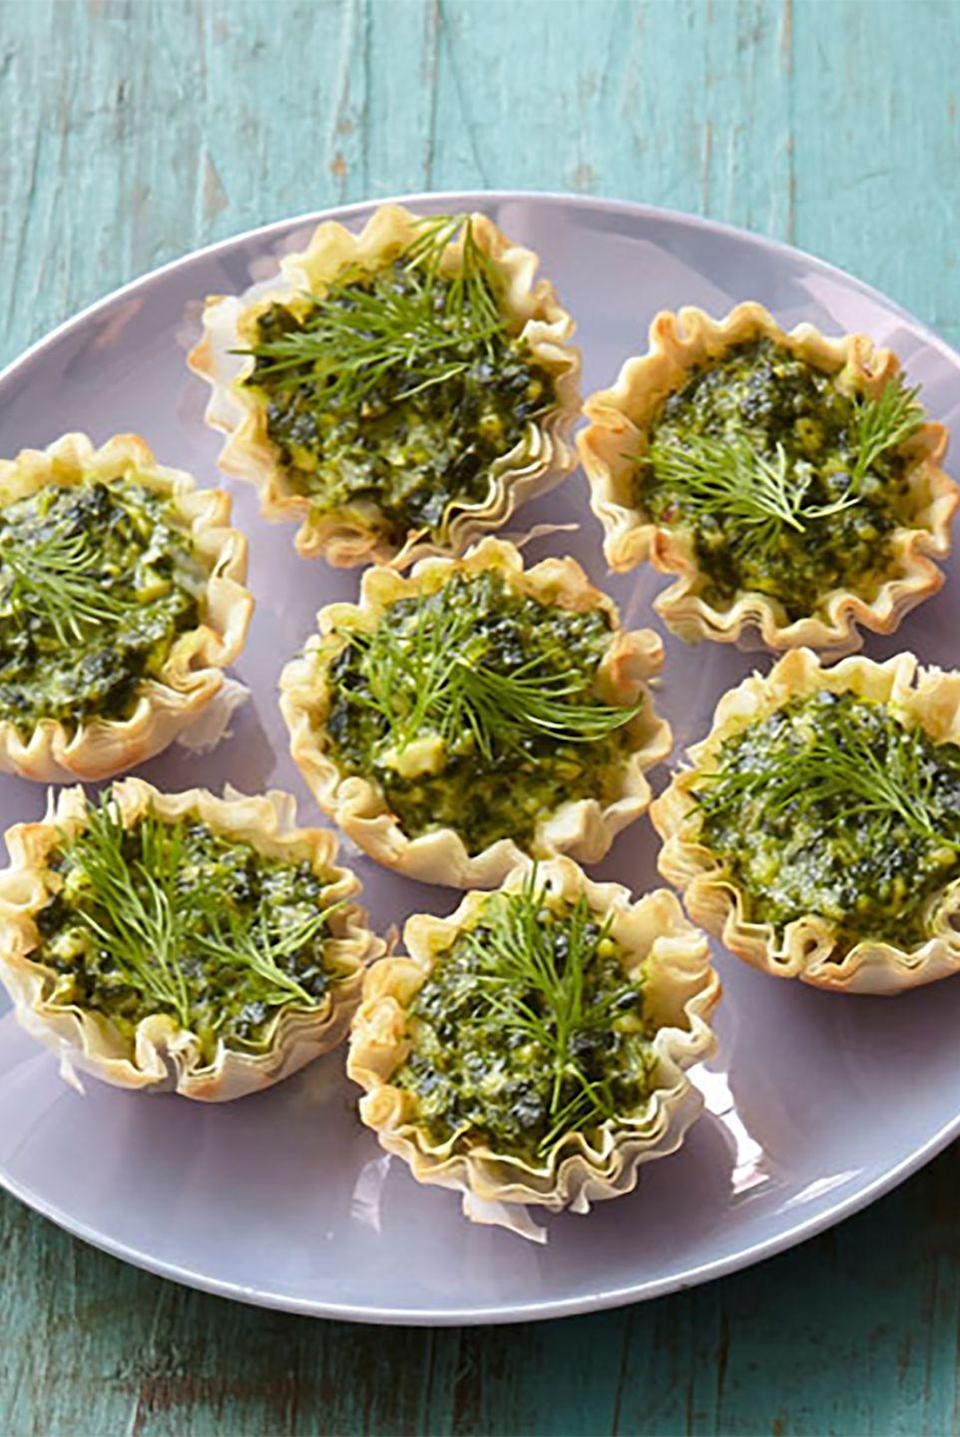 """<p>These Mediterranean-inspired tartlets are filled with spinach, feta cheese, and fresh dill in a crunchy phyllo dough shell.</p><p><strong><a href=""""https://www.countryliving.com/food-drinks/recipes/a34777/feta-spinach-tartlets-recipe-ghk0414/"""" rel=""""nofollow noopener"""" target=""""_blank"""" data-ylk=""""slk:Get the recipe"""" class=""""link rapid-noclick-resp"""">Get the recipe</a>.</strong><br></p>"""